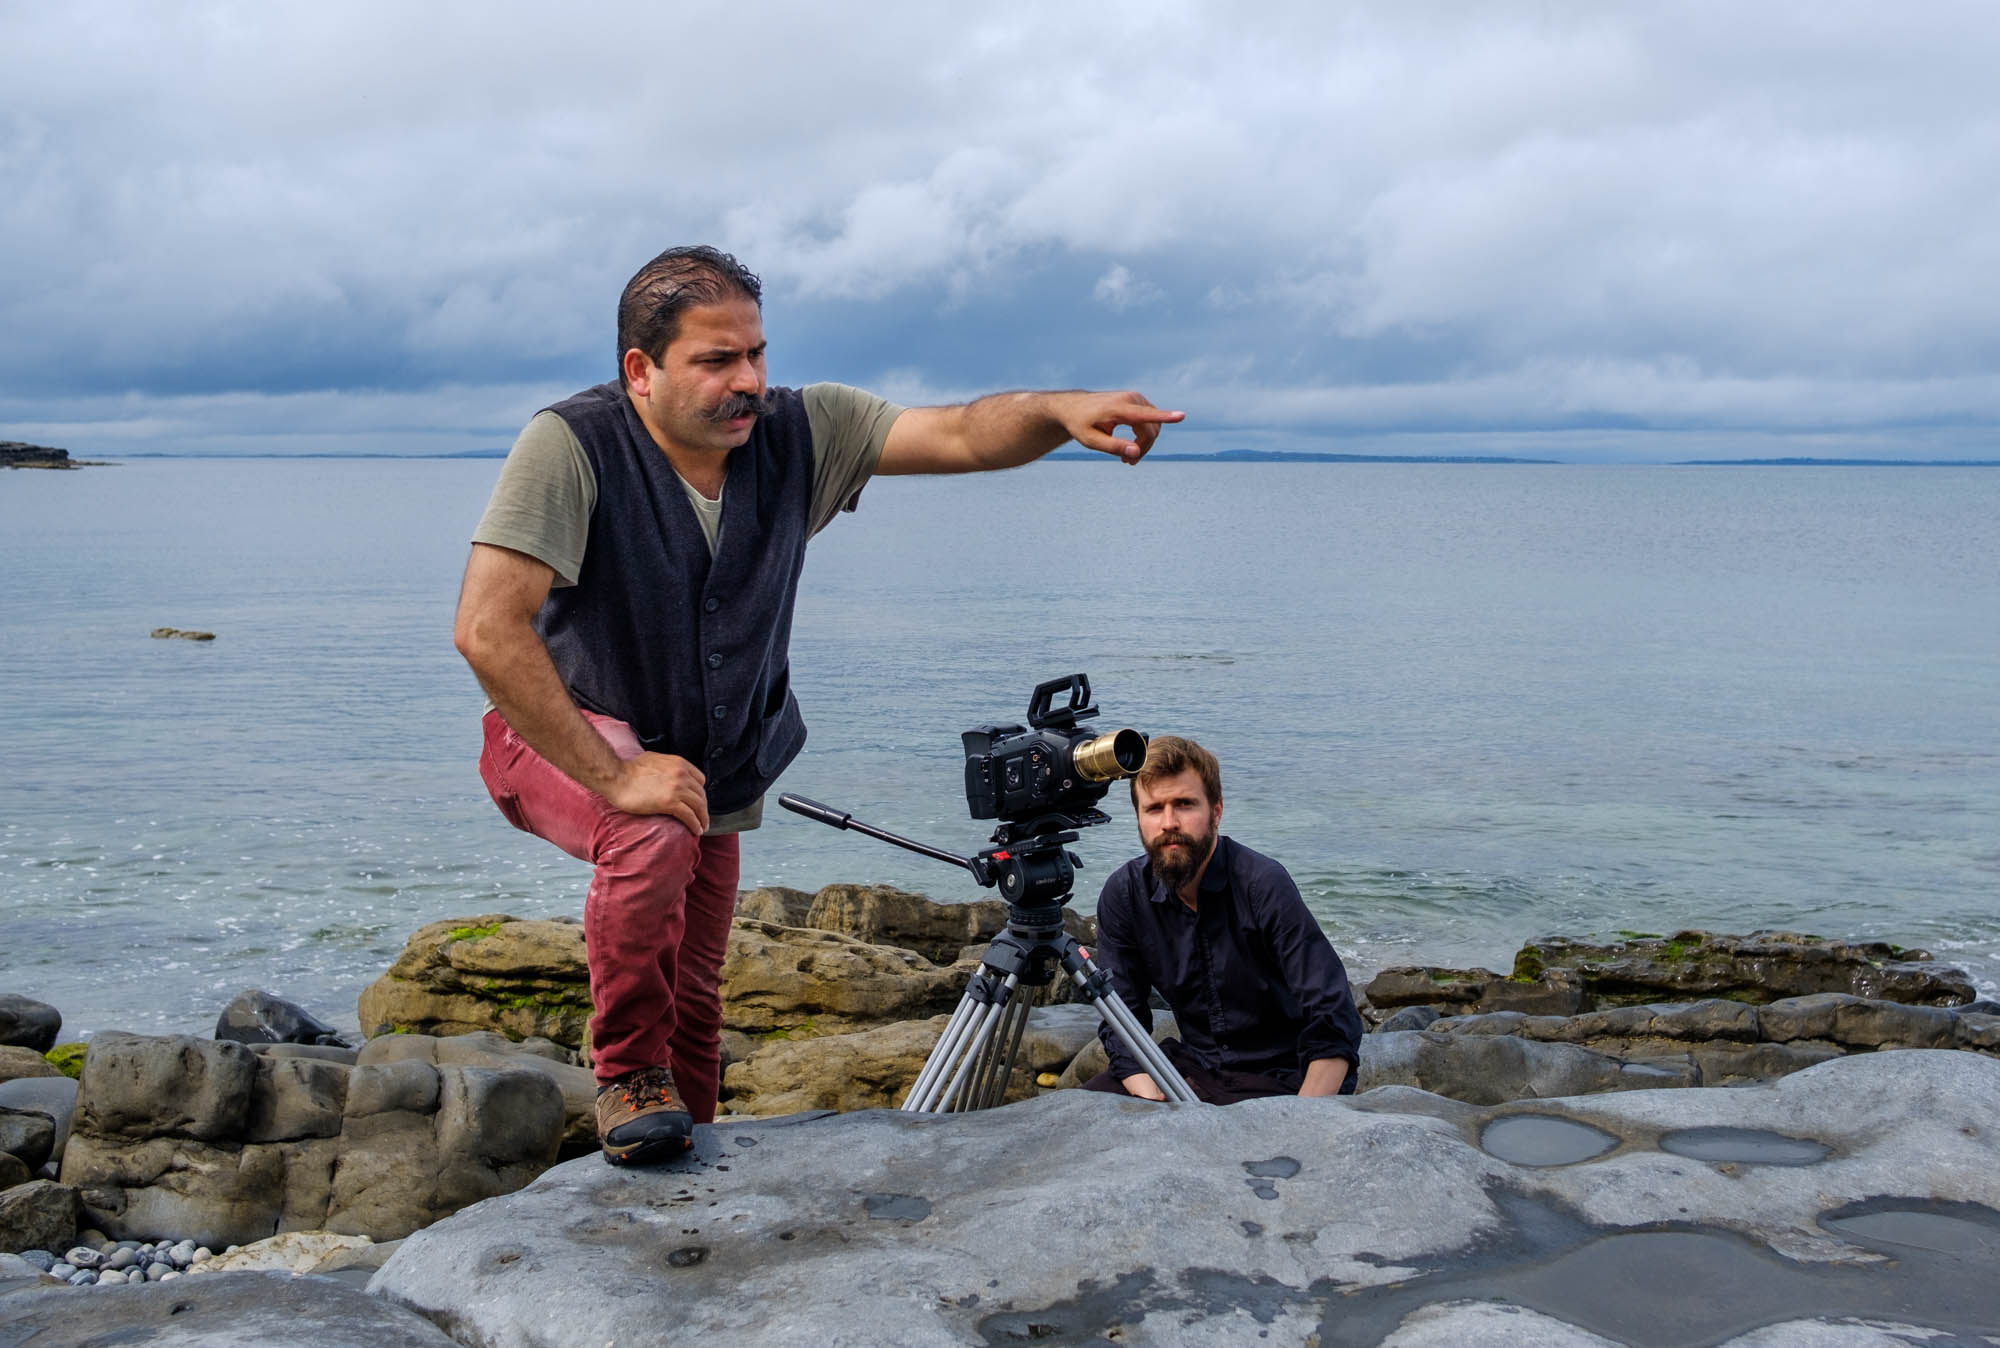 Rouzbeh Rashidi and Jann Clavadetscher filming on Inis Mór, August 2017.